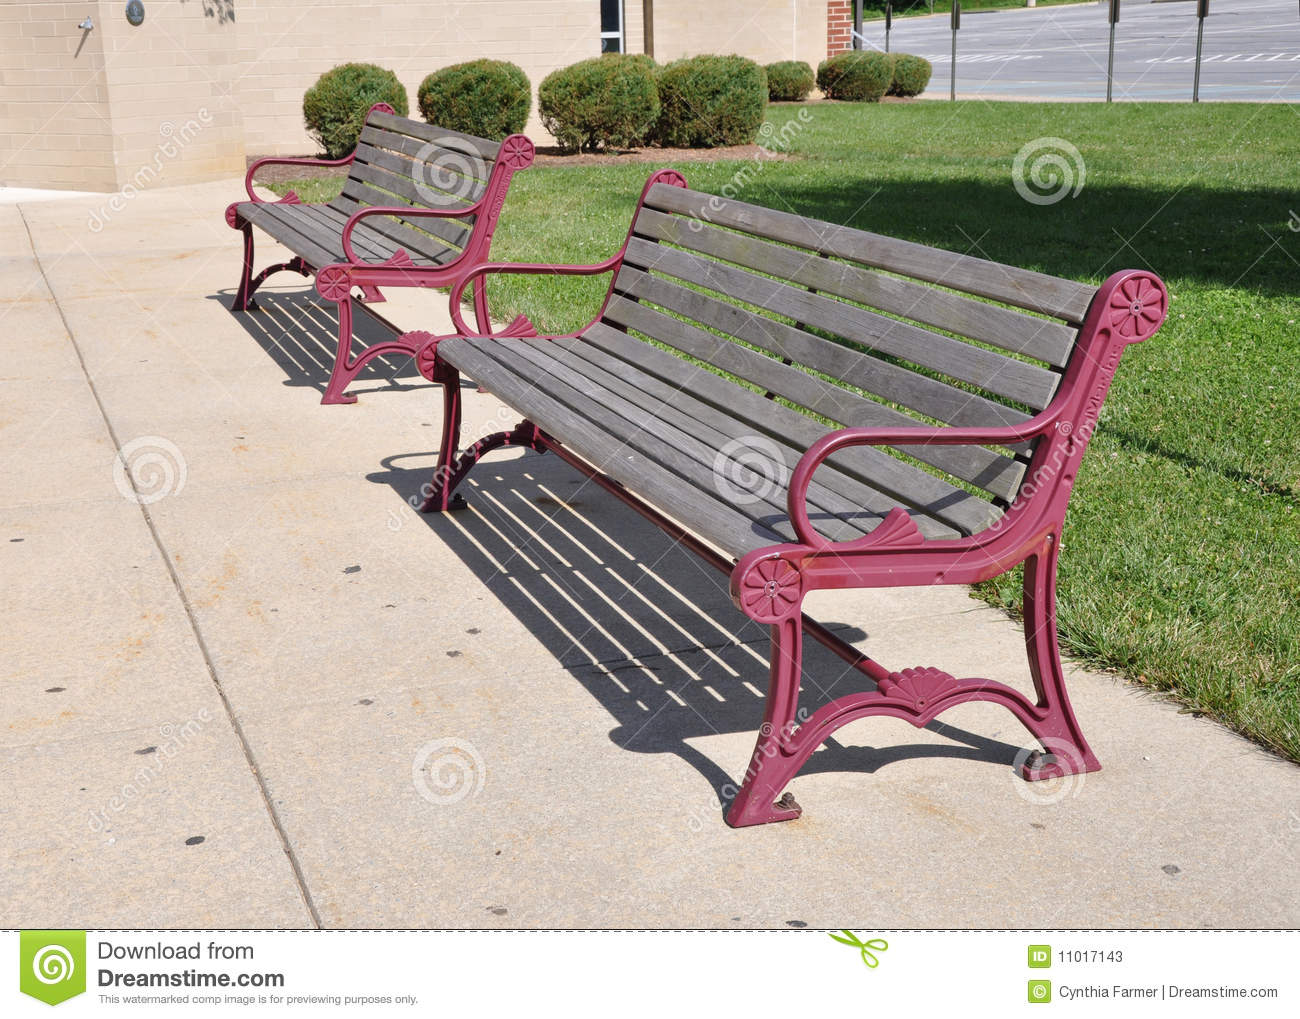 Two Empty Outdoor Benches Stock Photos - Image: 11017143